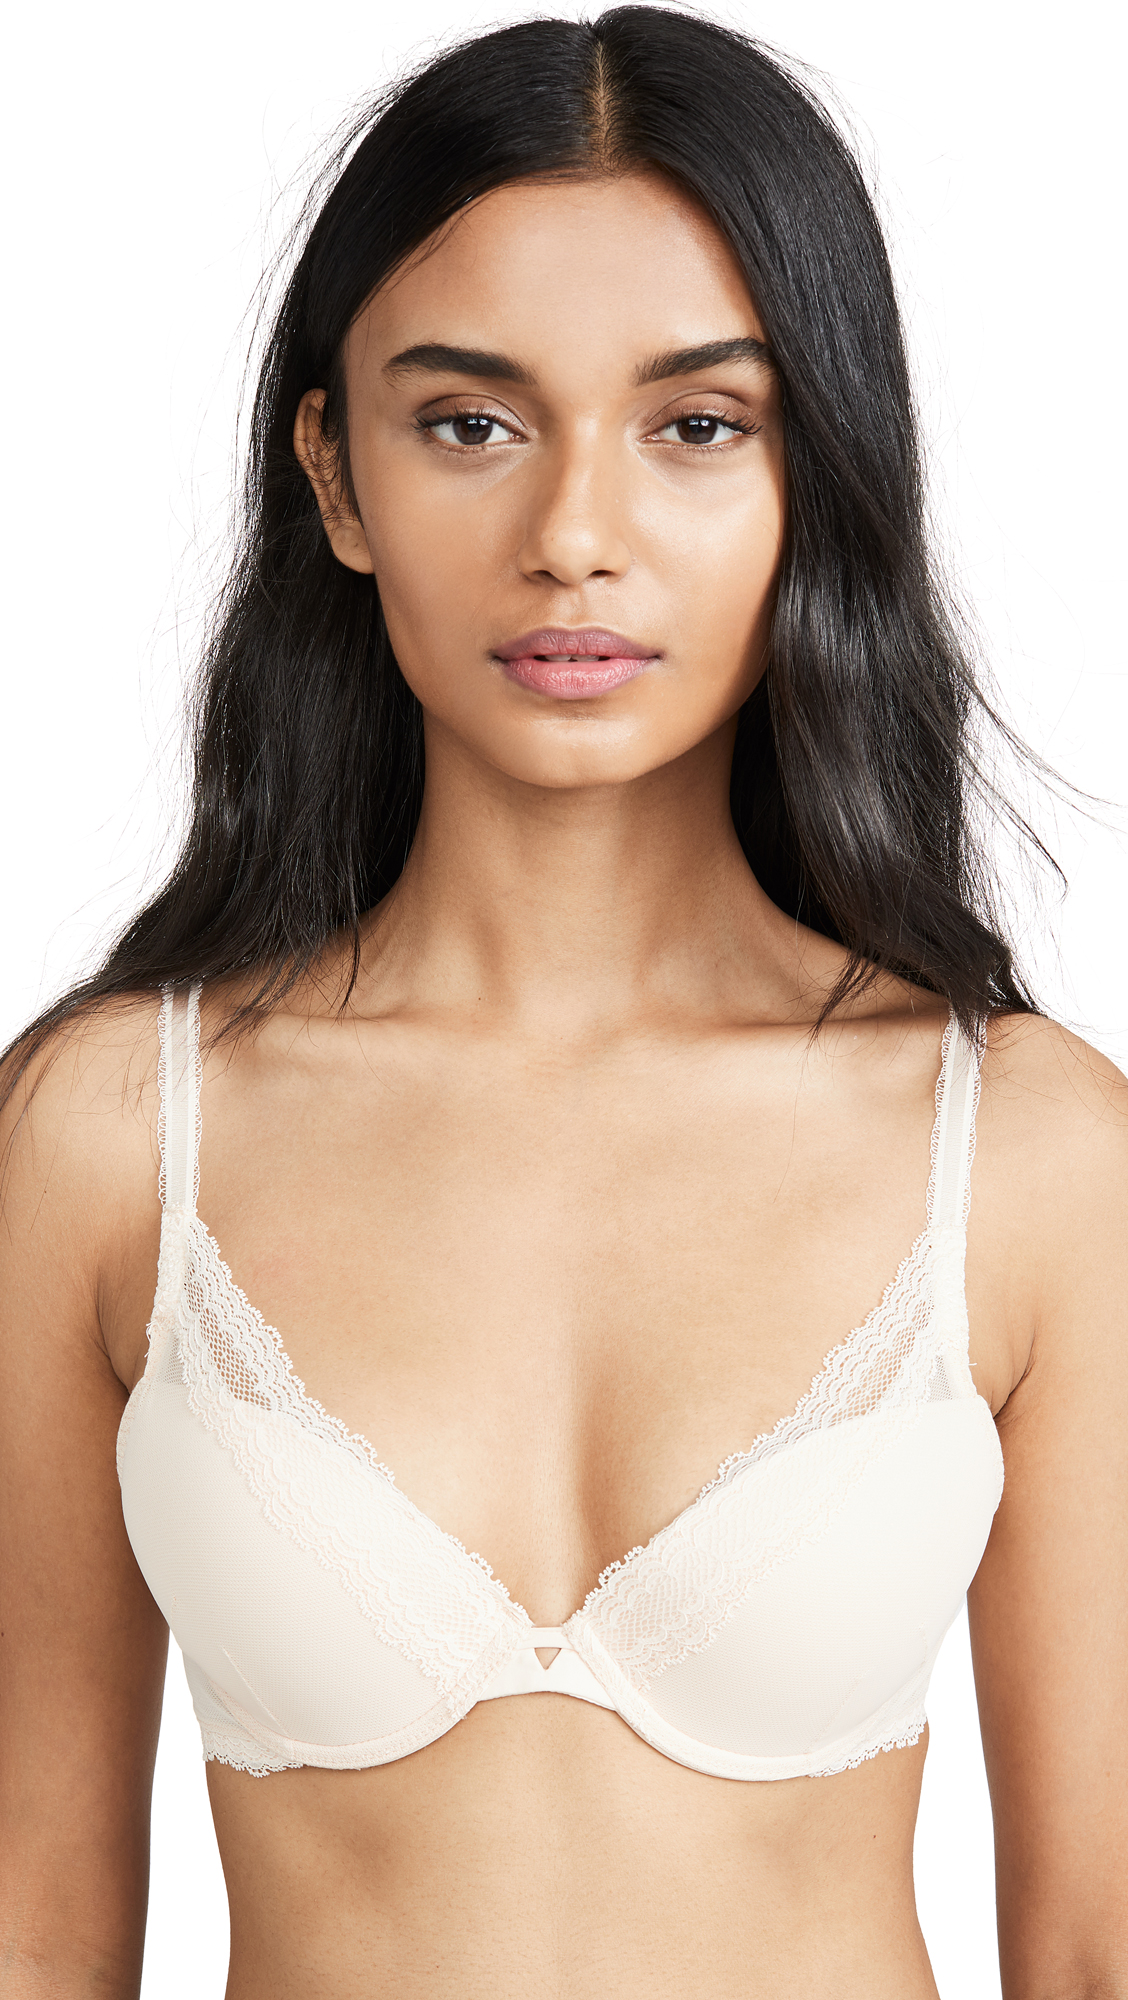 Simone Perele Confiance Triangle Contour Push Up Bra